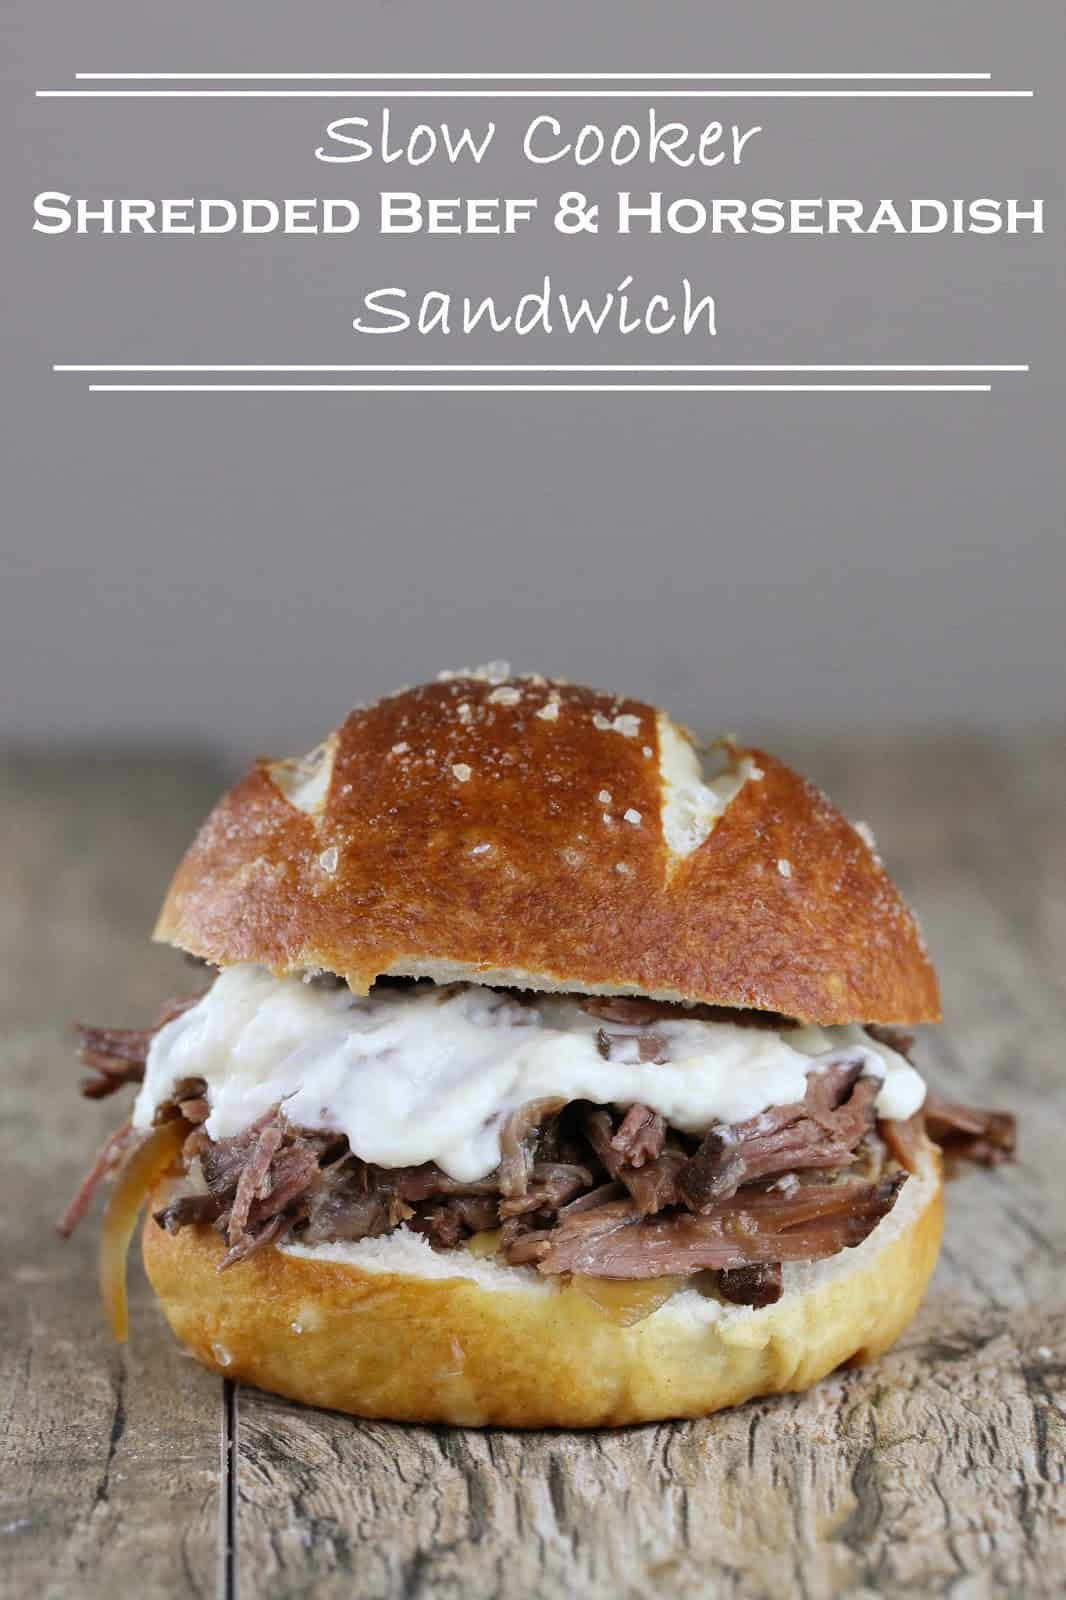 """Slow Cooker Shredded Beef and Horseradish Sandwich on a wood counter with the words """"Slow Cooker Shredded Beef and Horseradish Sandwich"""" above it."""